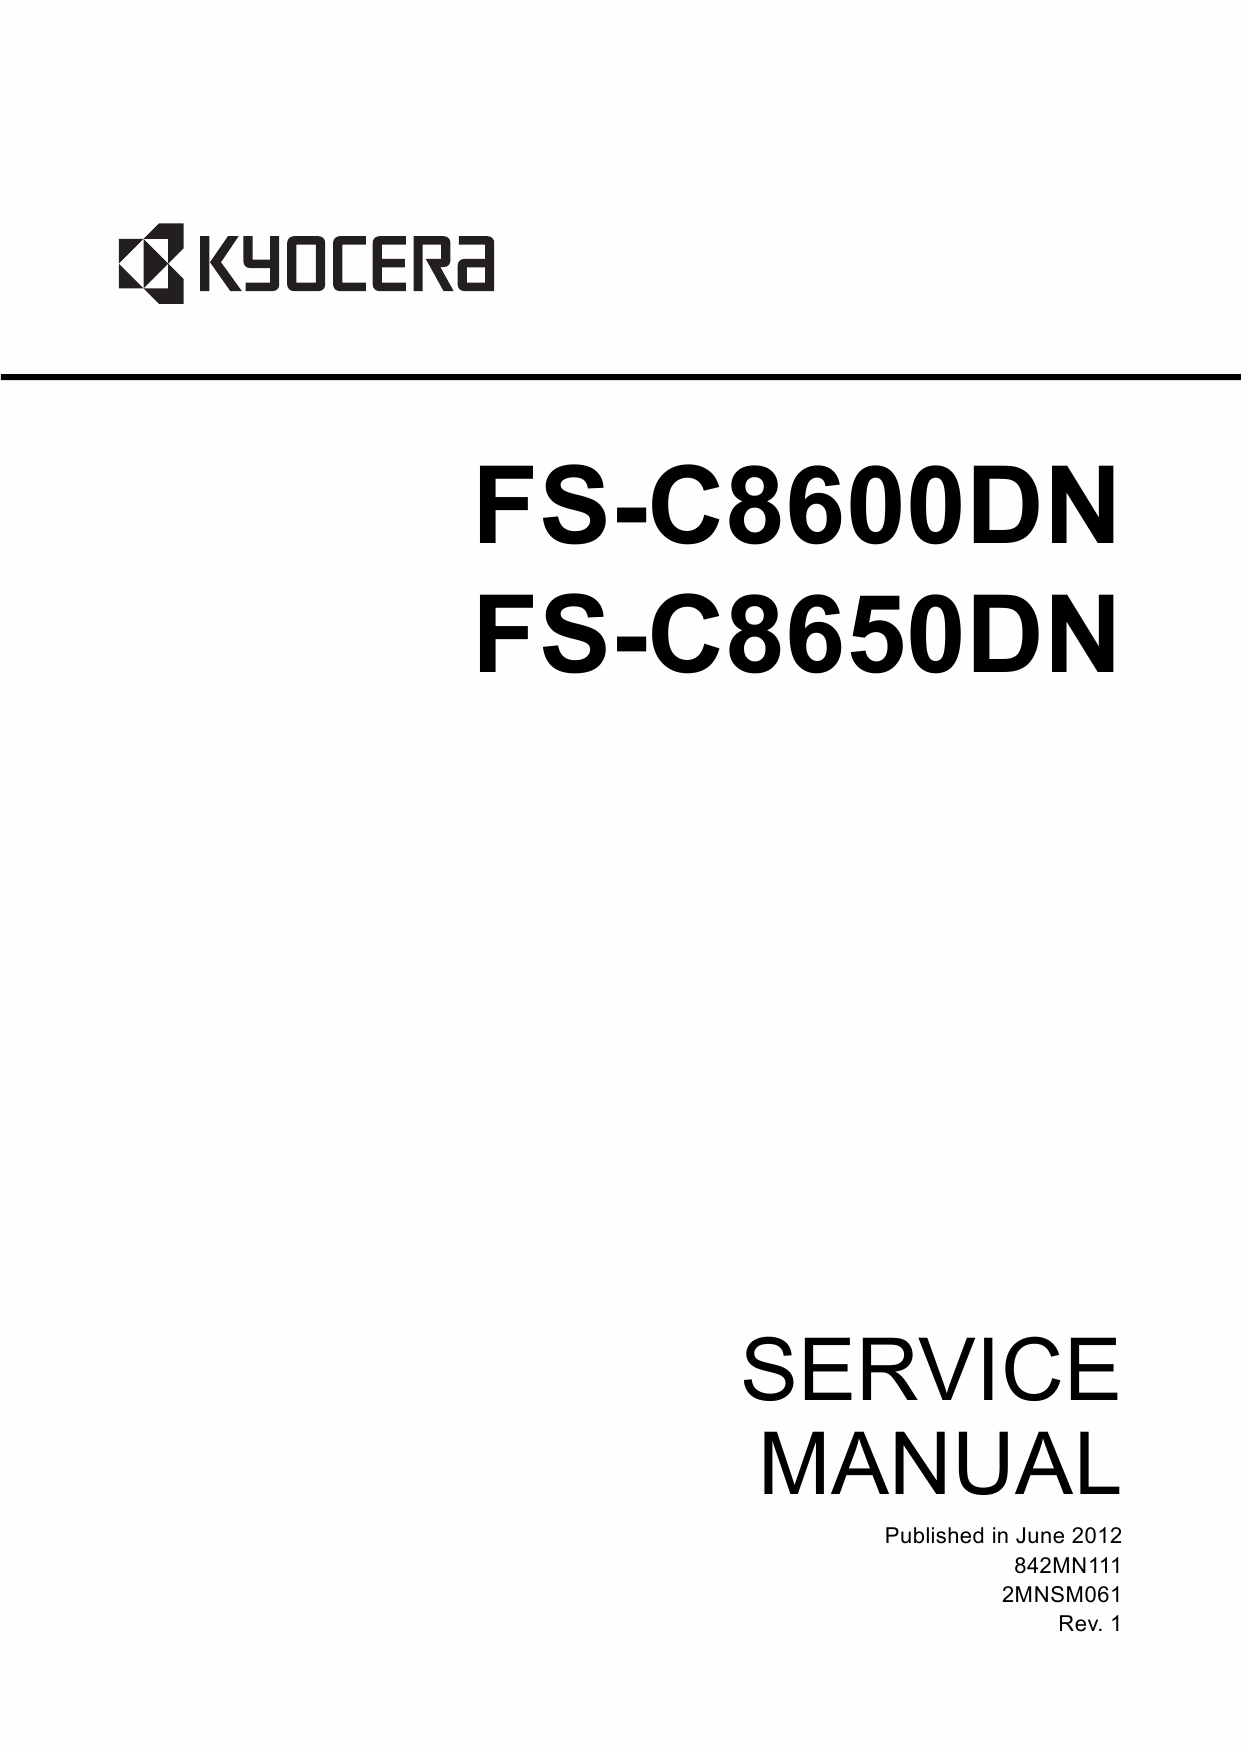 KYOCERA ColorLaserPrinter FS-C8600DN 8650DN Service Manual-1